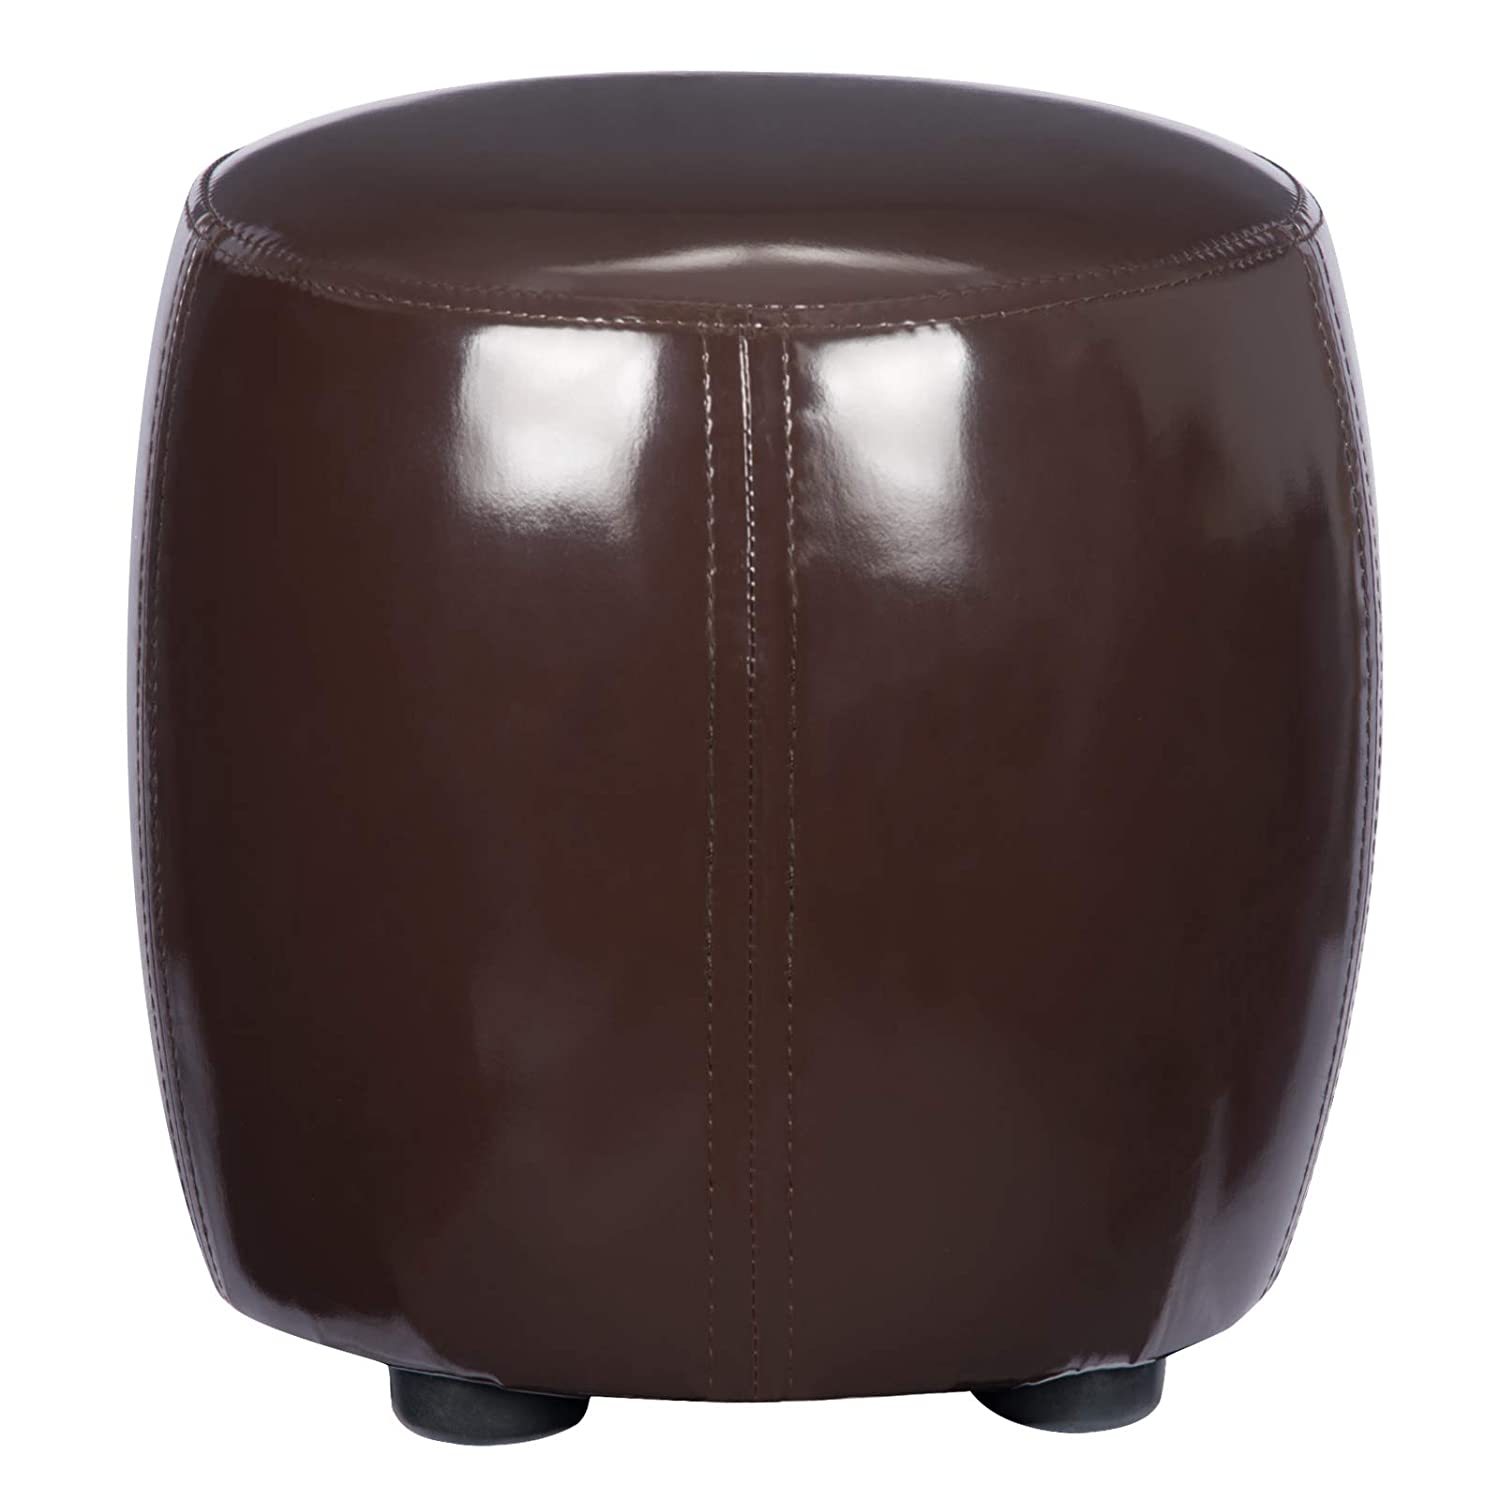 WOLTU Round Wooden Support Upholstered Footstool Black Ottoman Chair Stool Footrest